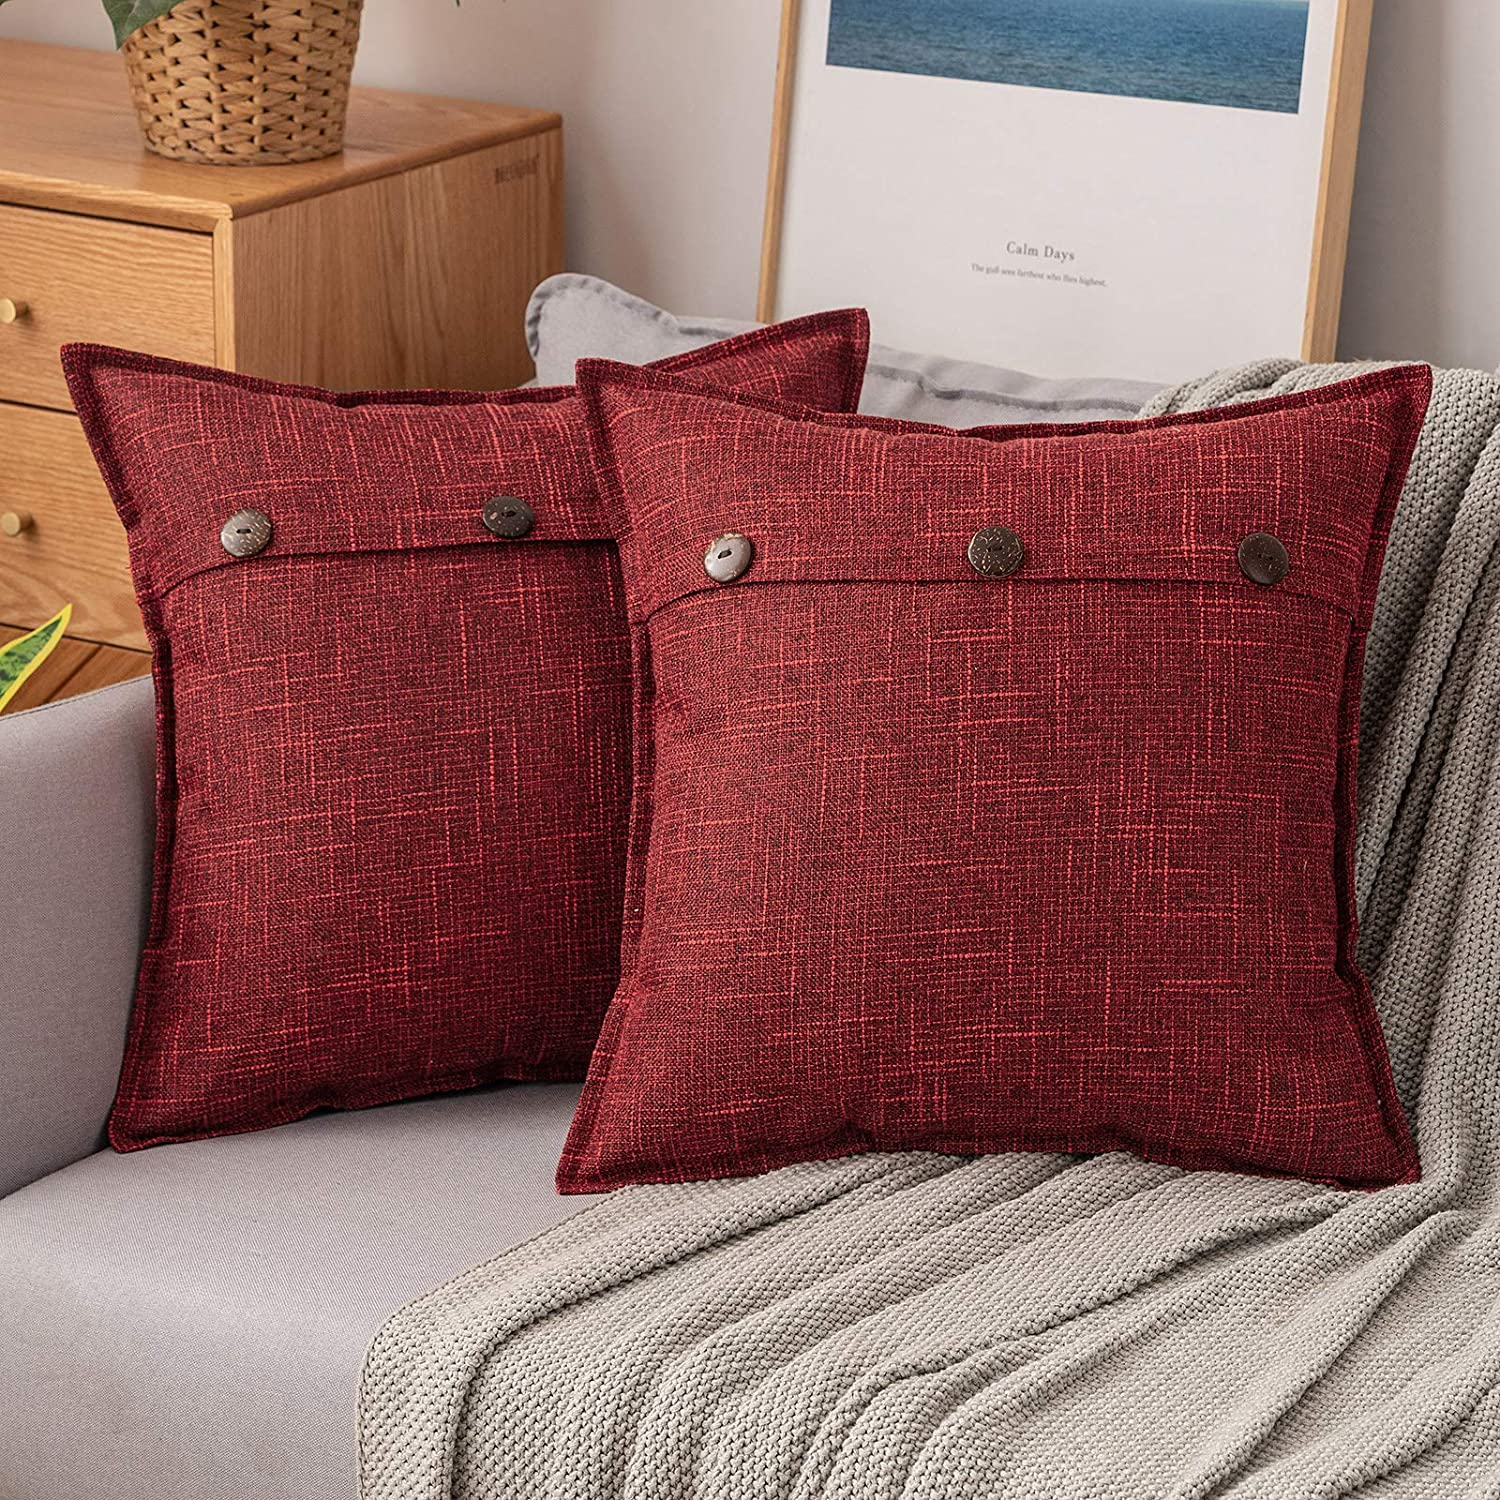 MIULEE Pack of 2 Farmhouse Linen Throw Pillow Covers Decorative Triple Button Square Pillowcases Trimmed Edge Burlap Cushion Cases for Couch Sofa Car Living Room Home Decor 18x18 Inch Wine red